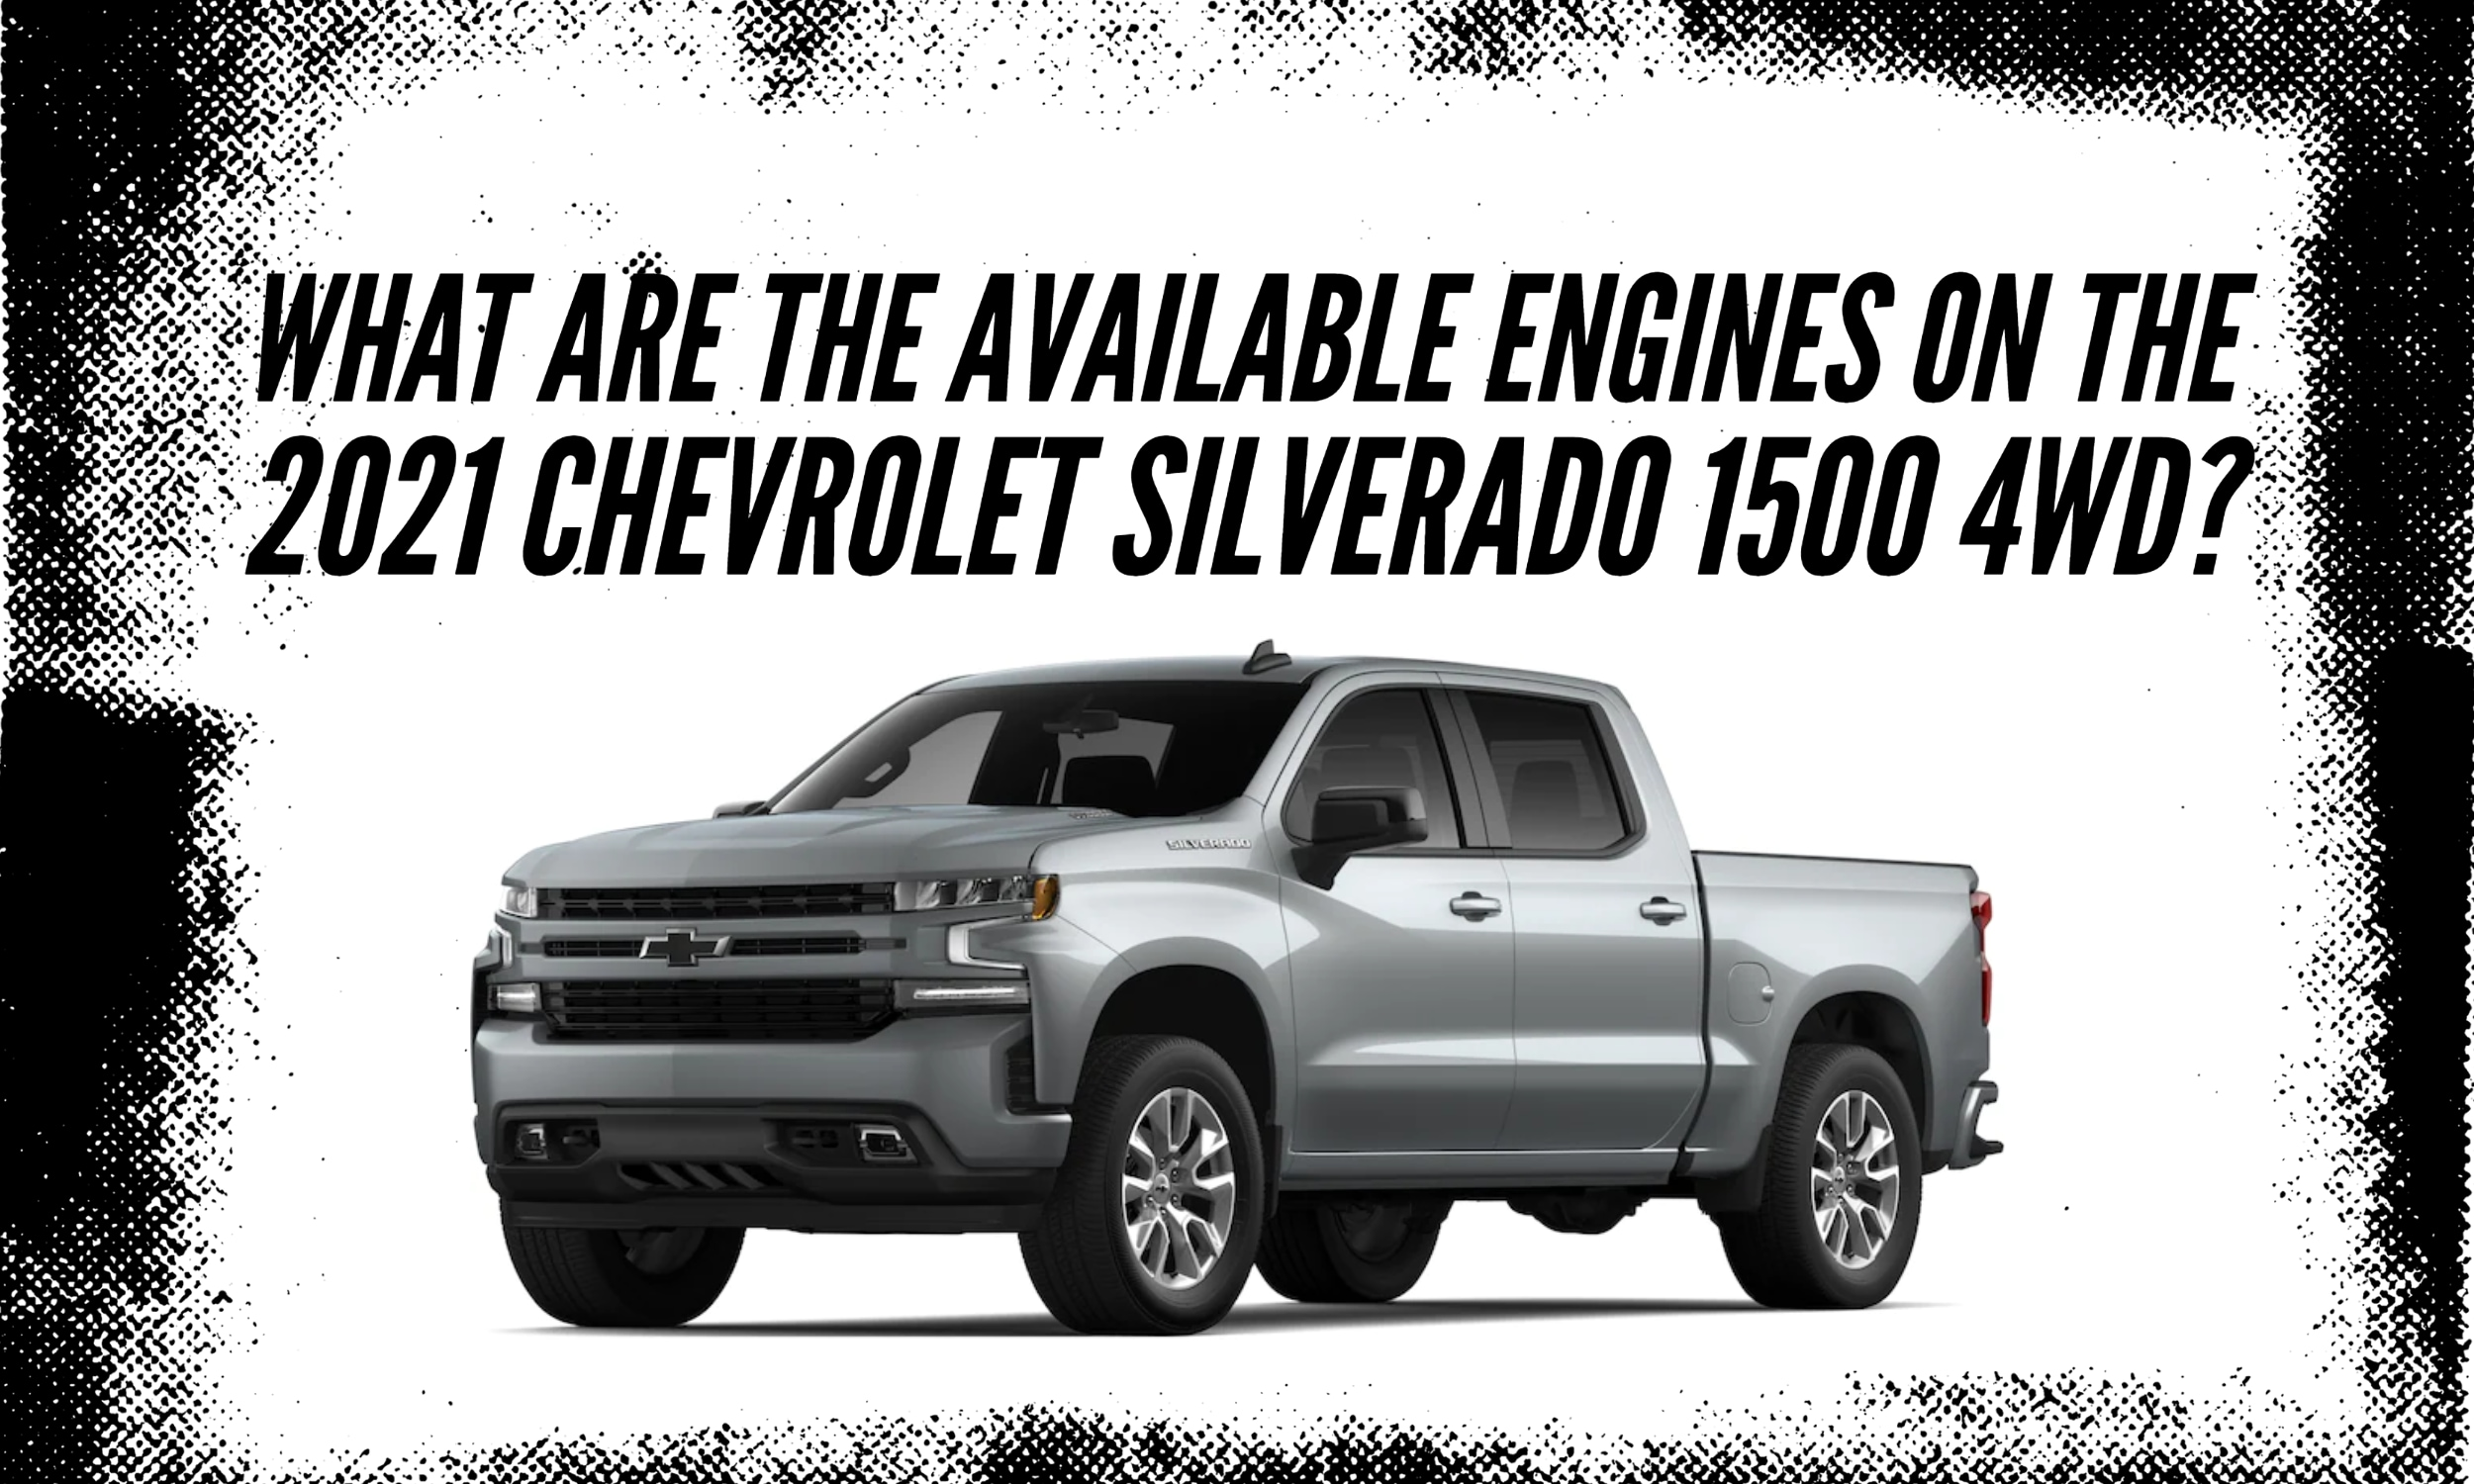 "Silverado 3/4 Front View with Grunge texture black border with title: "" What are the available engines one the 2021 Chevrolet Silverado 1500 4WD?"""